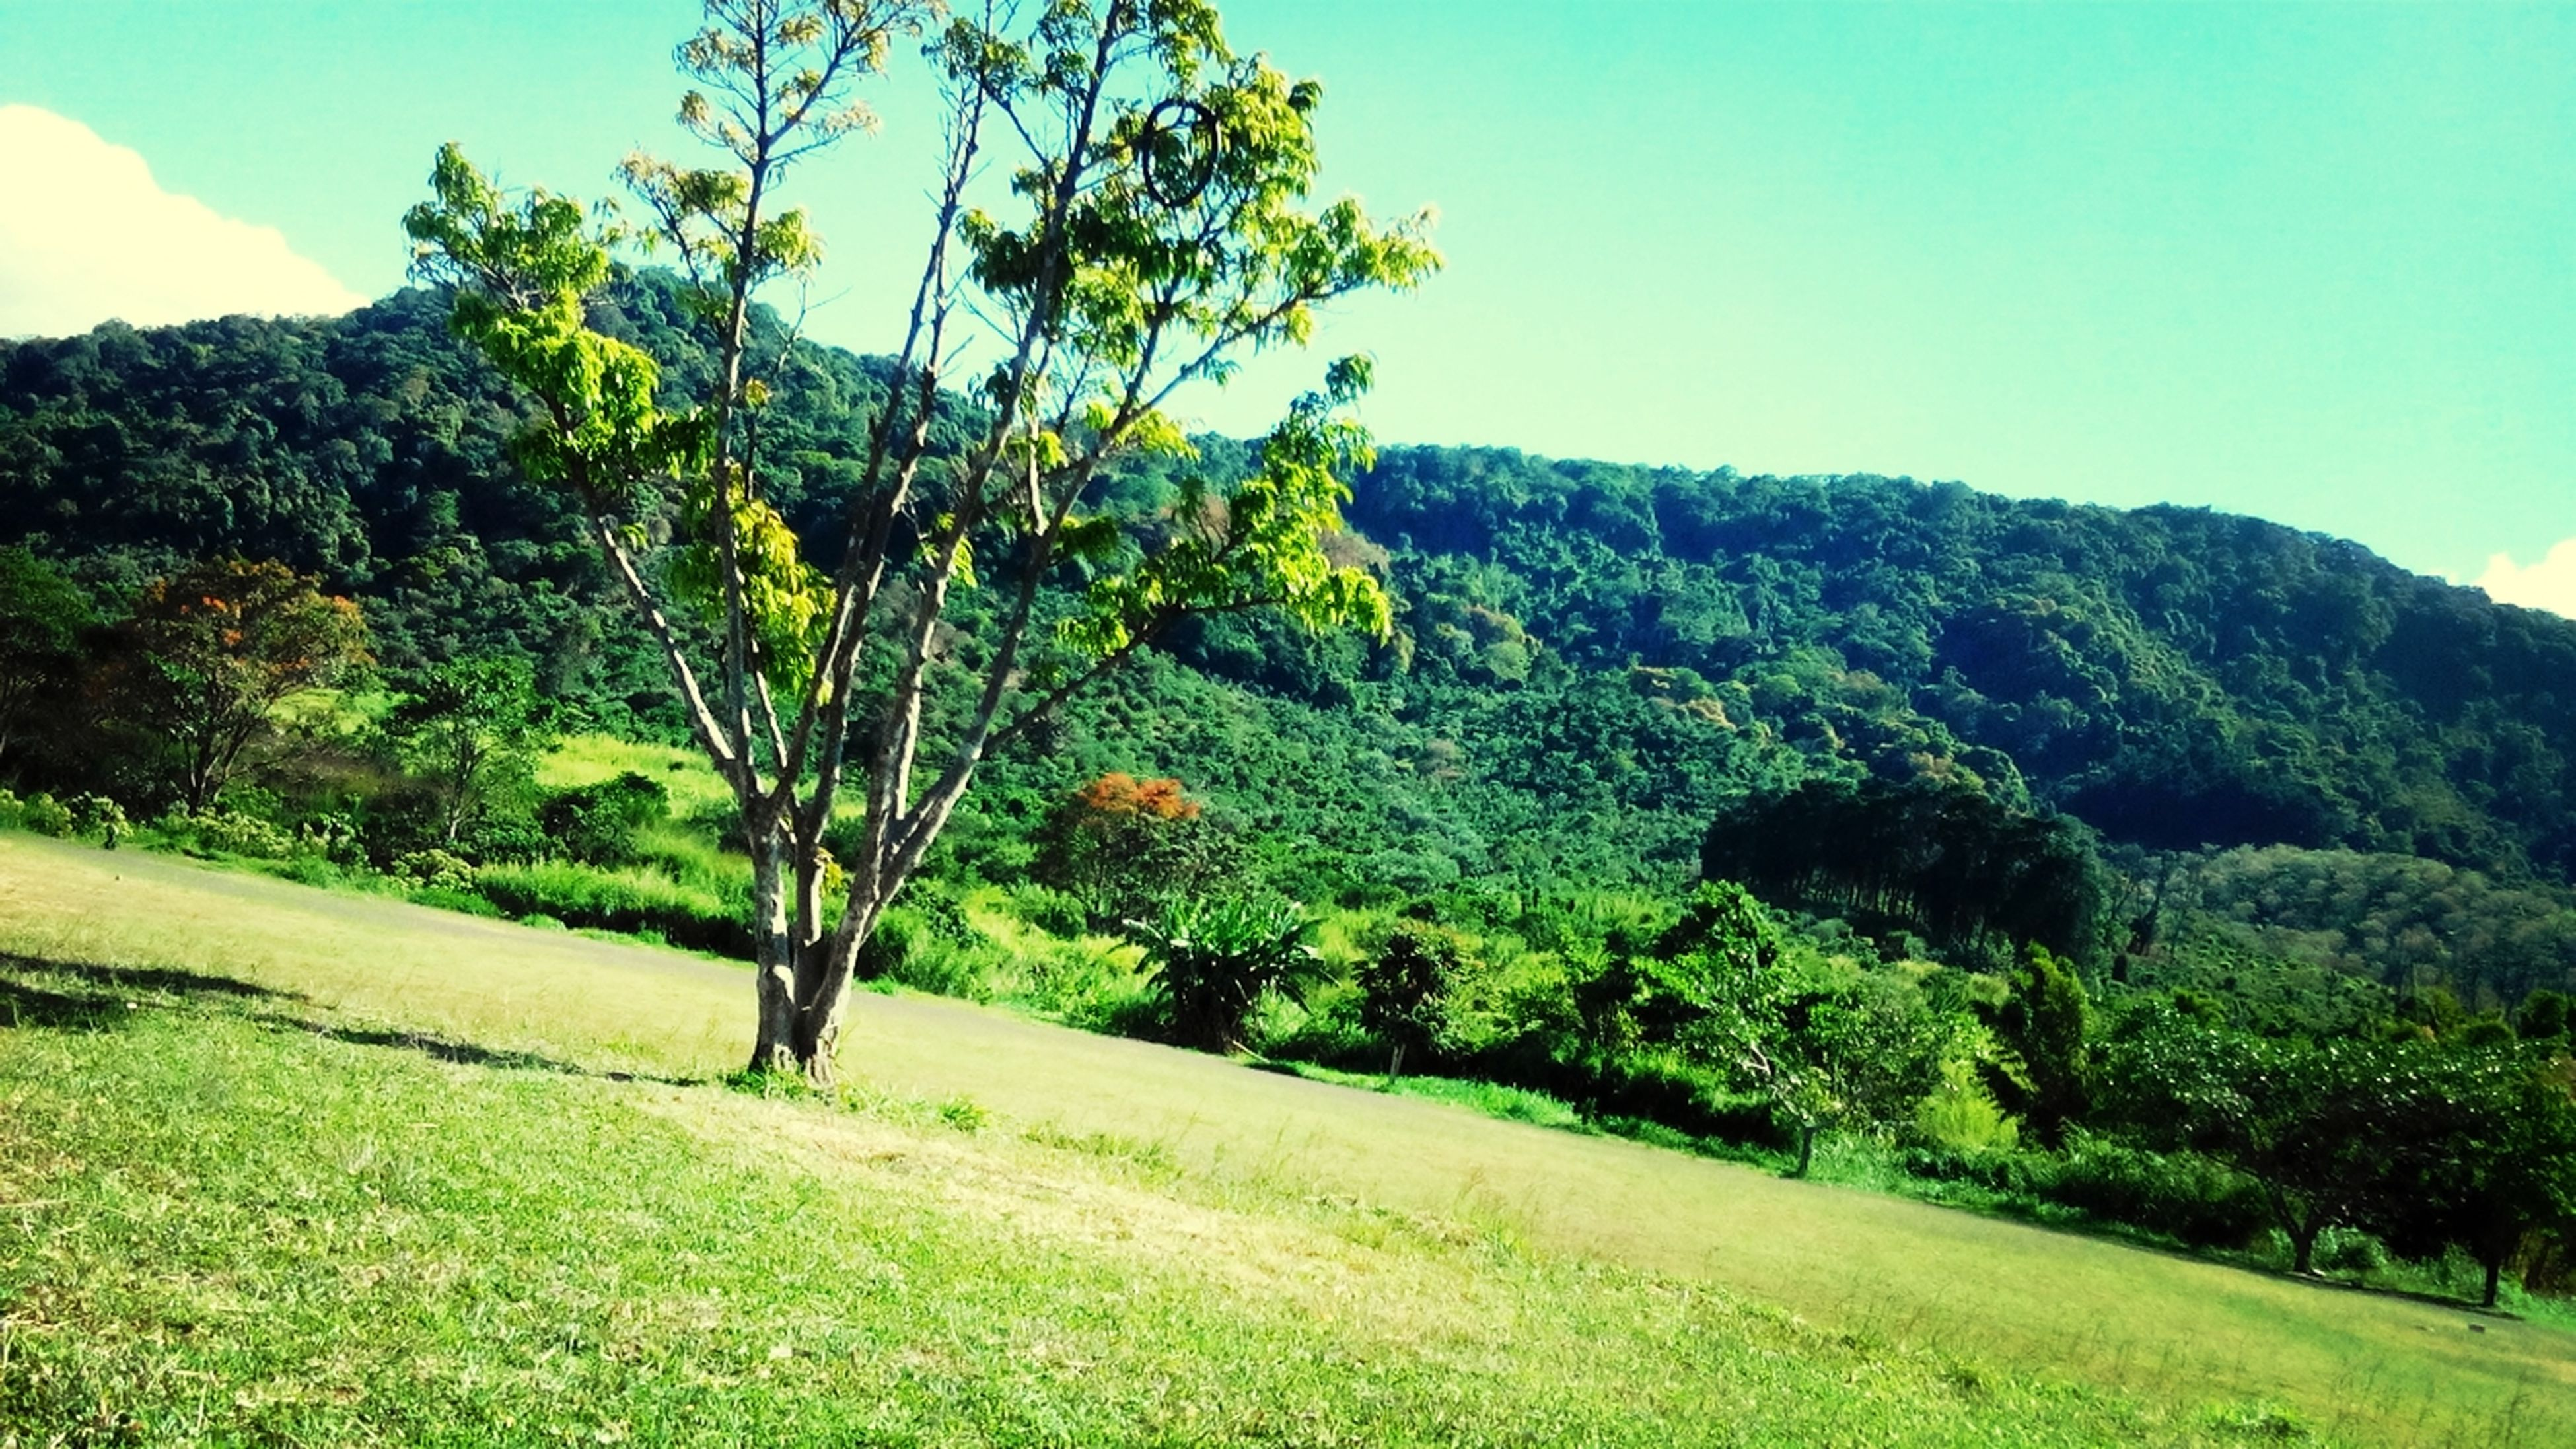 tree, green color, tranquility, tranquil scene, mountain, grass, clear sky, landscape, growth, beauty in nature, scenics, nature, green, sky, sunlight, lush foliage, field, non-urban scene, blue, hill